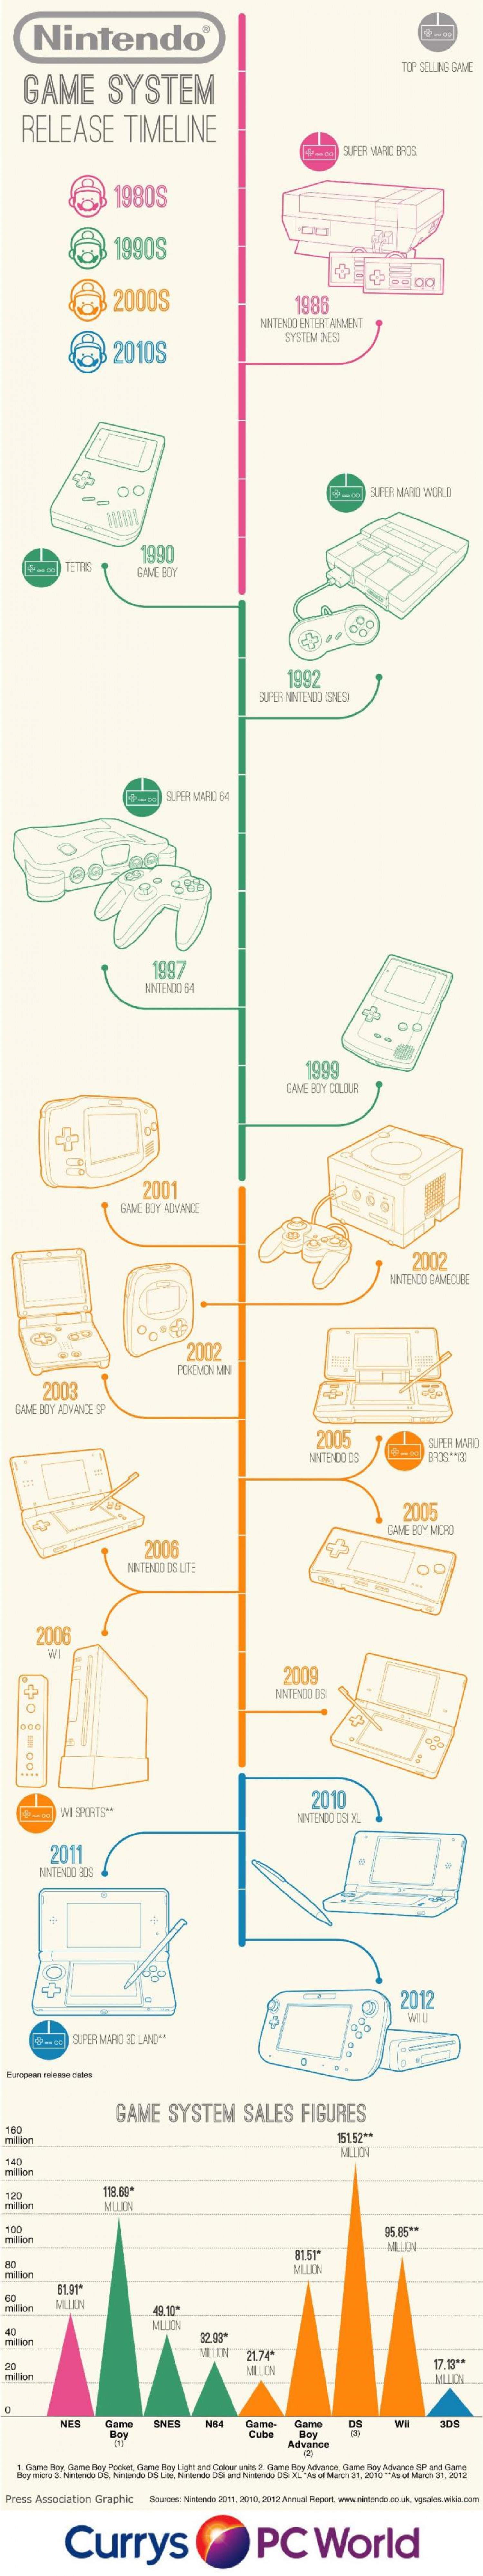 Nintendo Game System Release Timeline Infographic